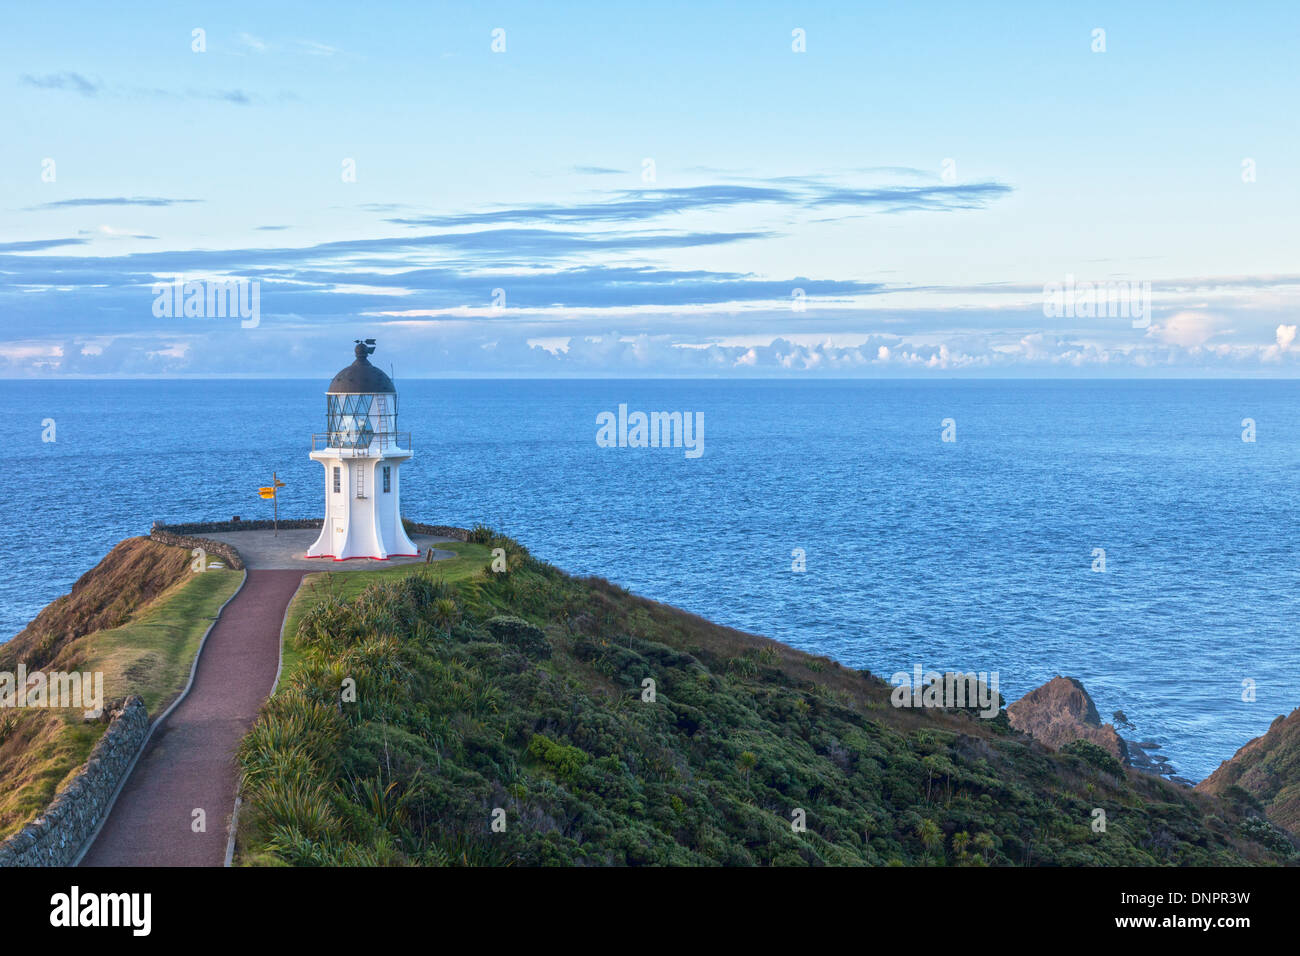 Cape Reinga is at the northern tip of New Zealand's North Island, though not quite the most northerly point. It - Stock Image